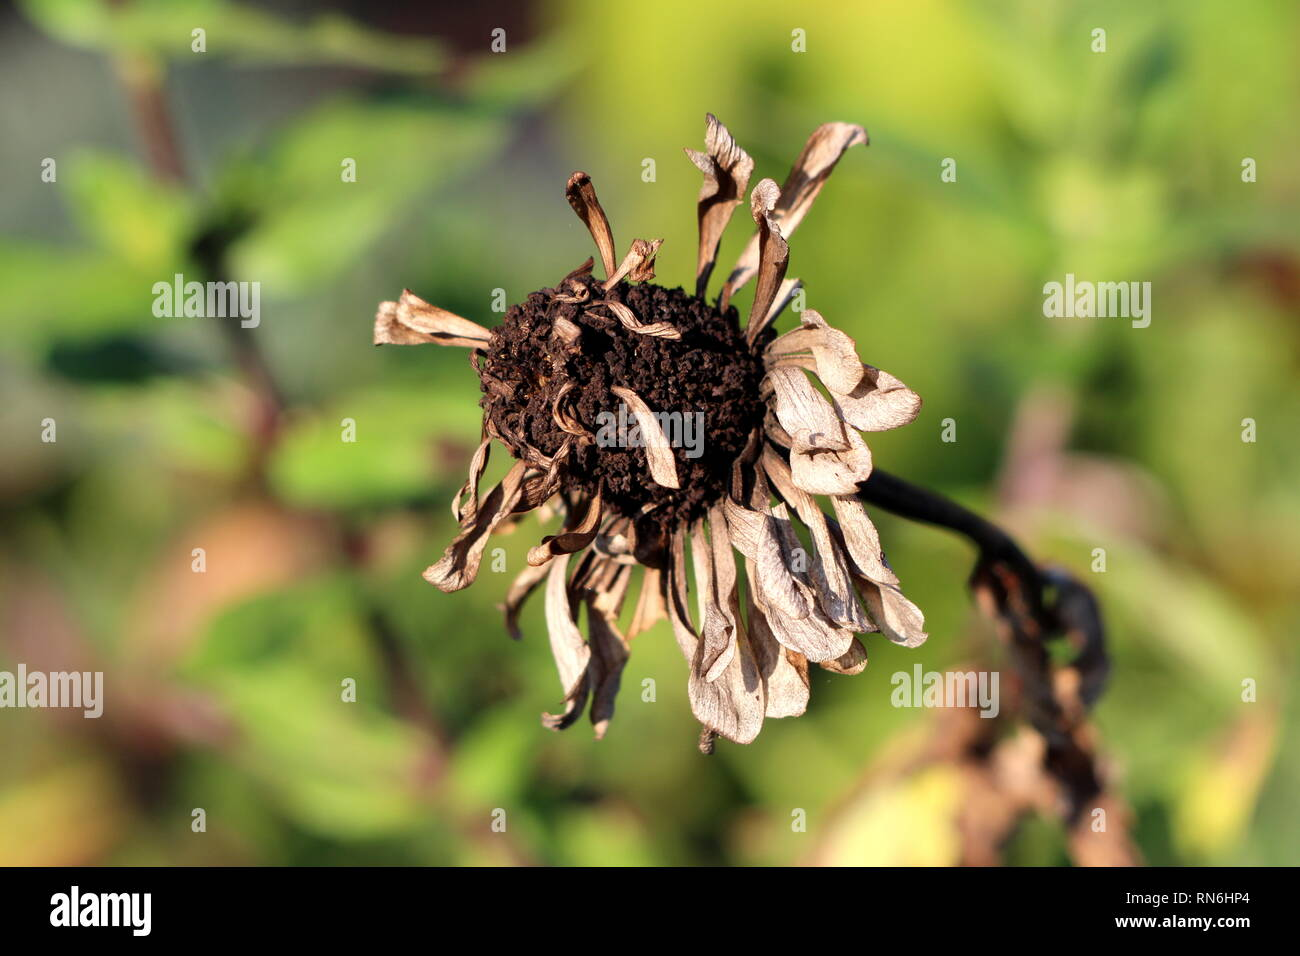 Dry and withered Zinnia plant with completely dried flower and multi layered petals surrounded with green leaves and other garden plants in background - Stock Image